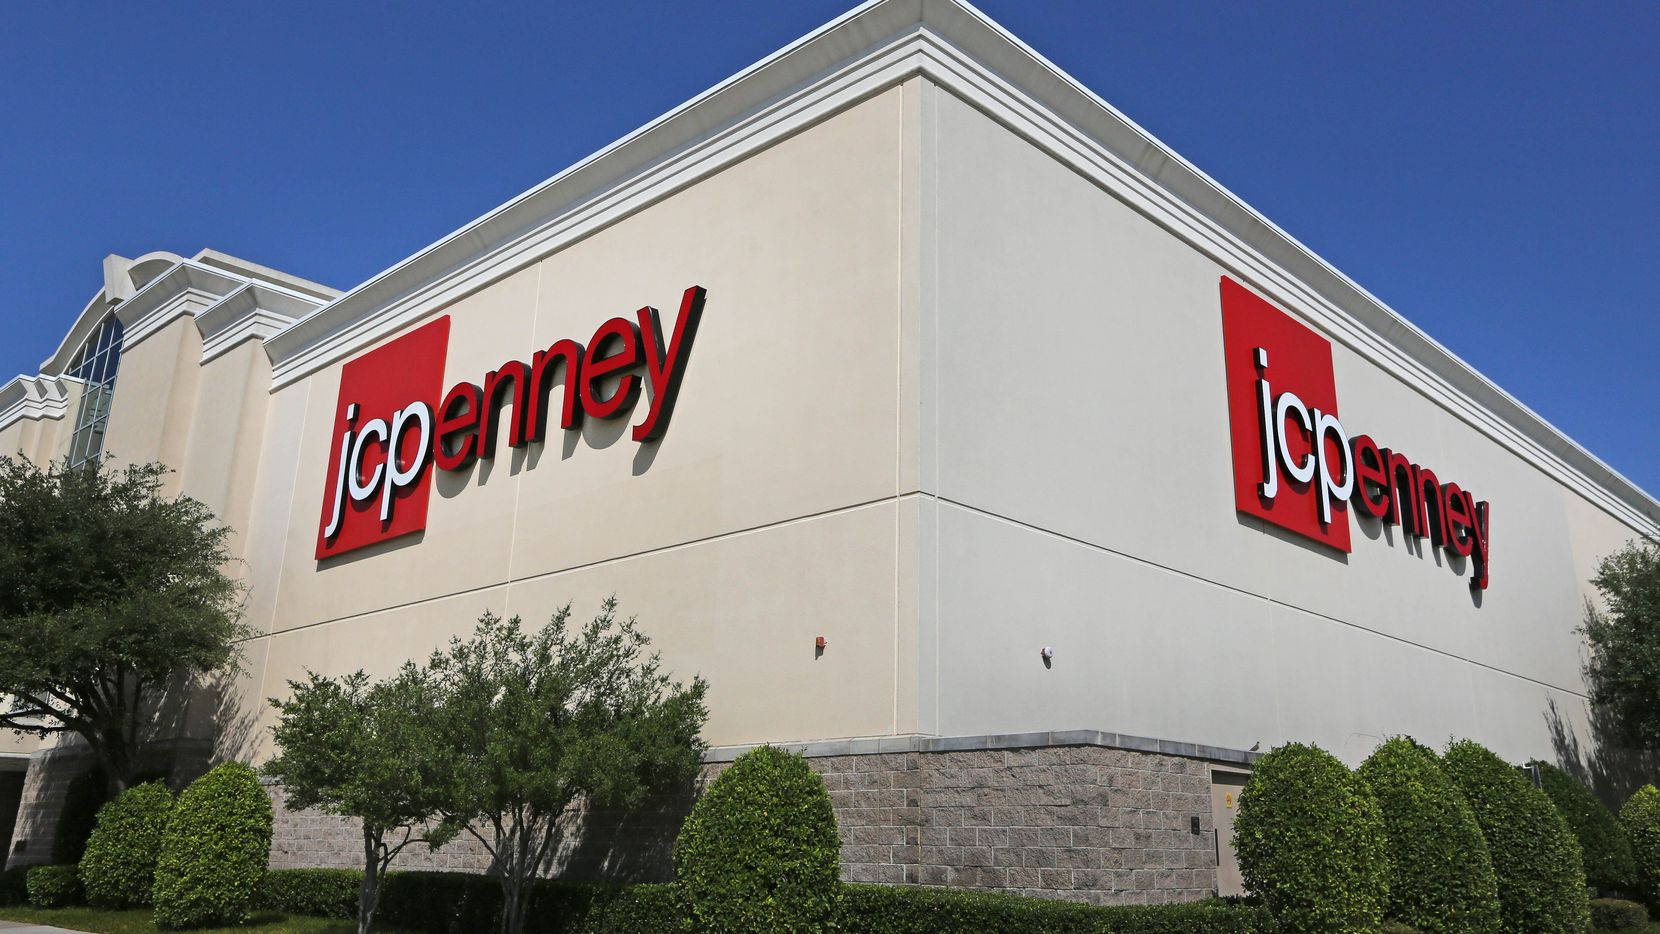 Jcpenney investment laopodis understanding investments for beginners